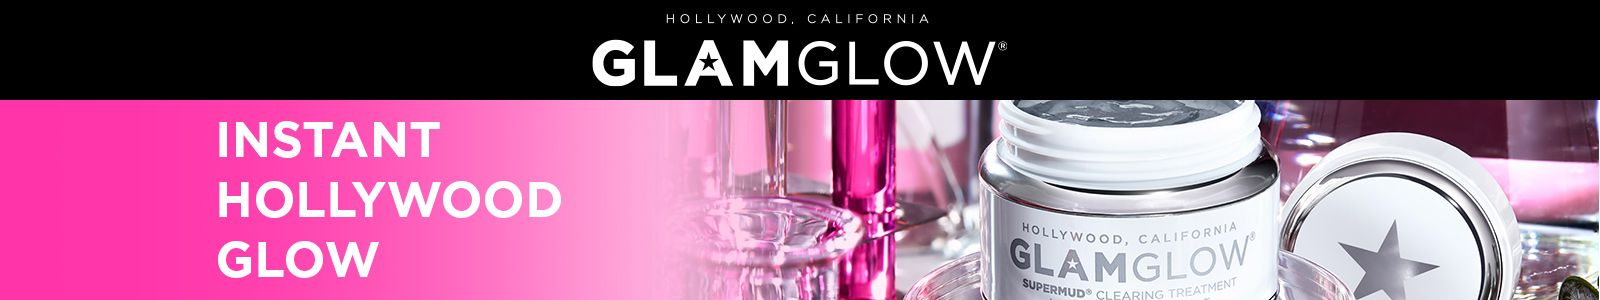 Holly Wood, California, Instant Hollywood Glow